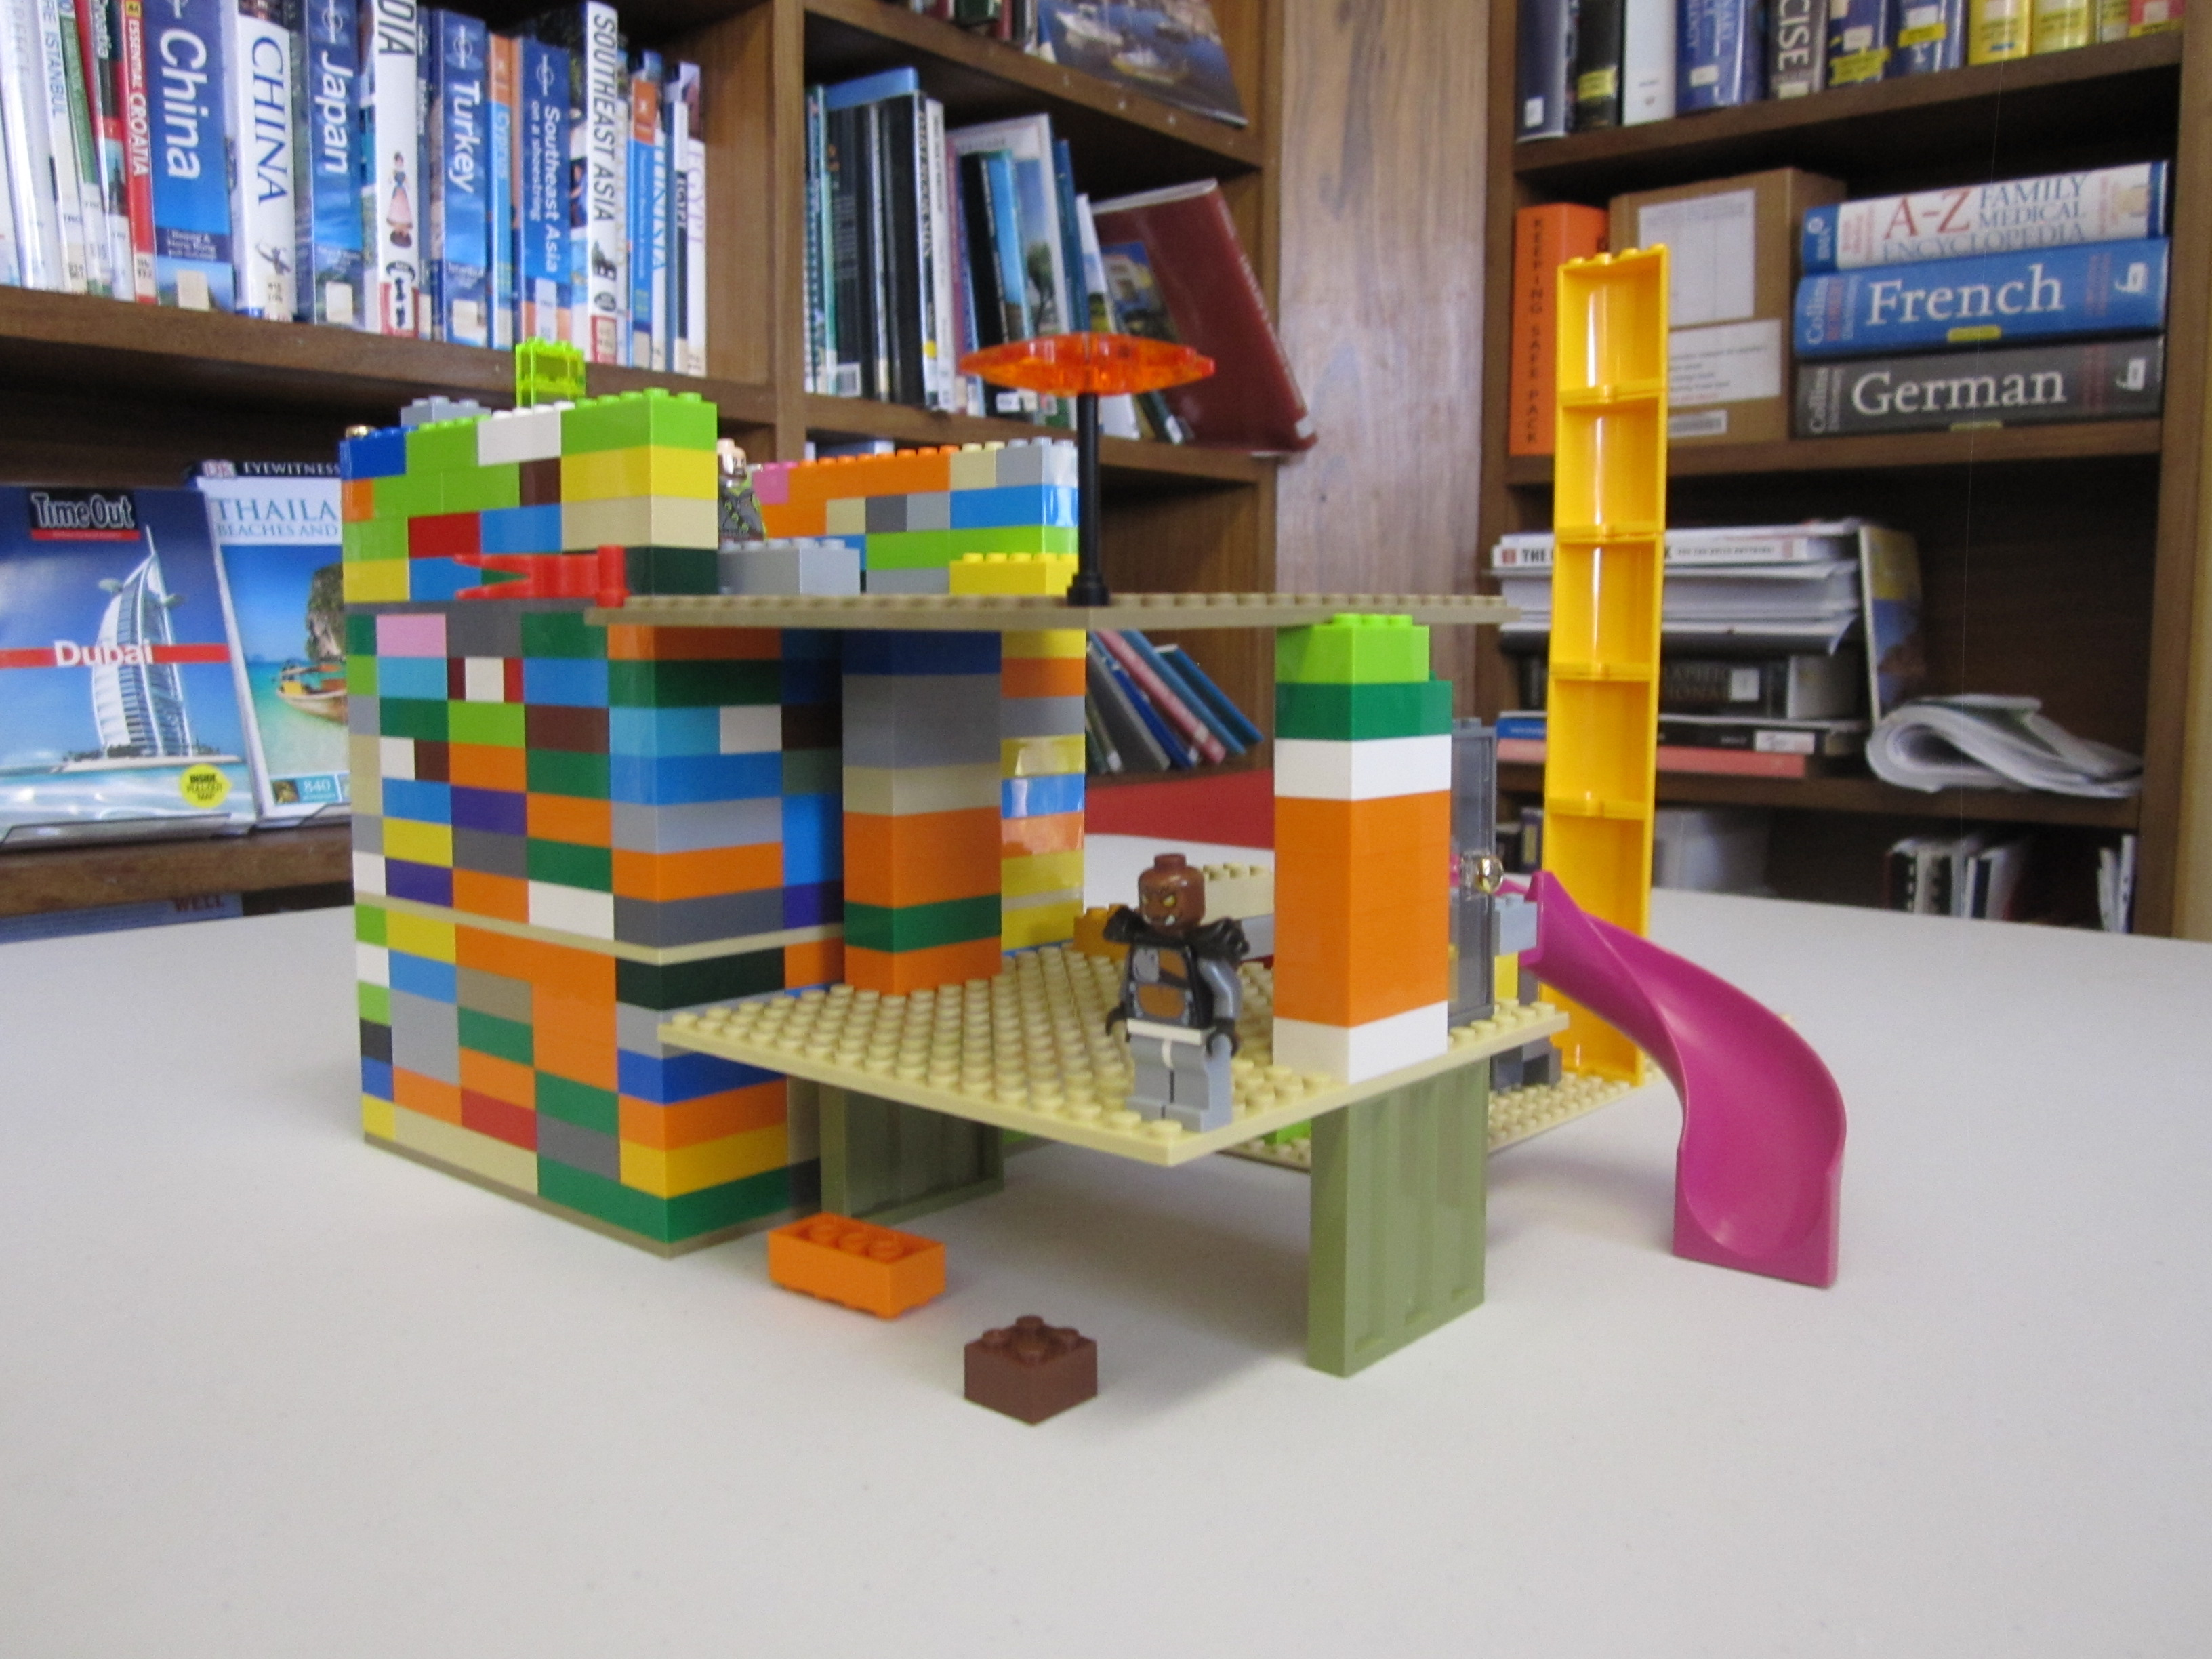 LEGO Table available to use in the library throughout the day. A wonderful way to create and build wonderful Lego creations.